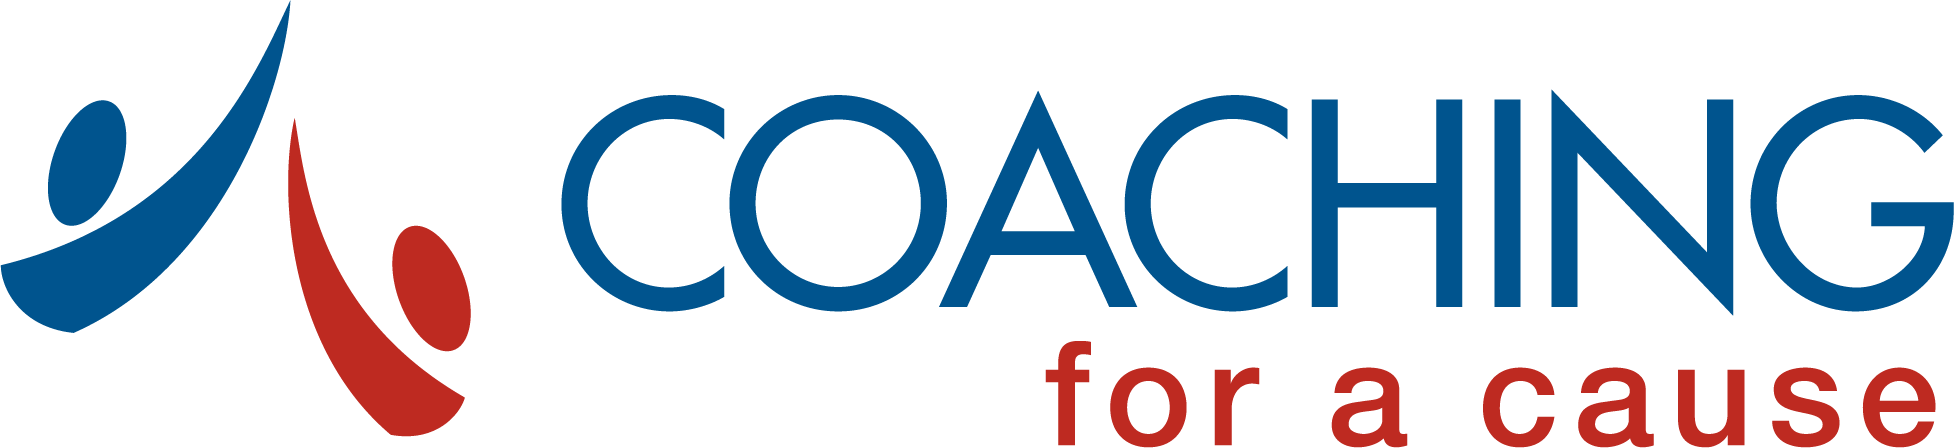 Coaching for a Cause Logo